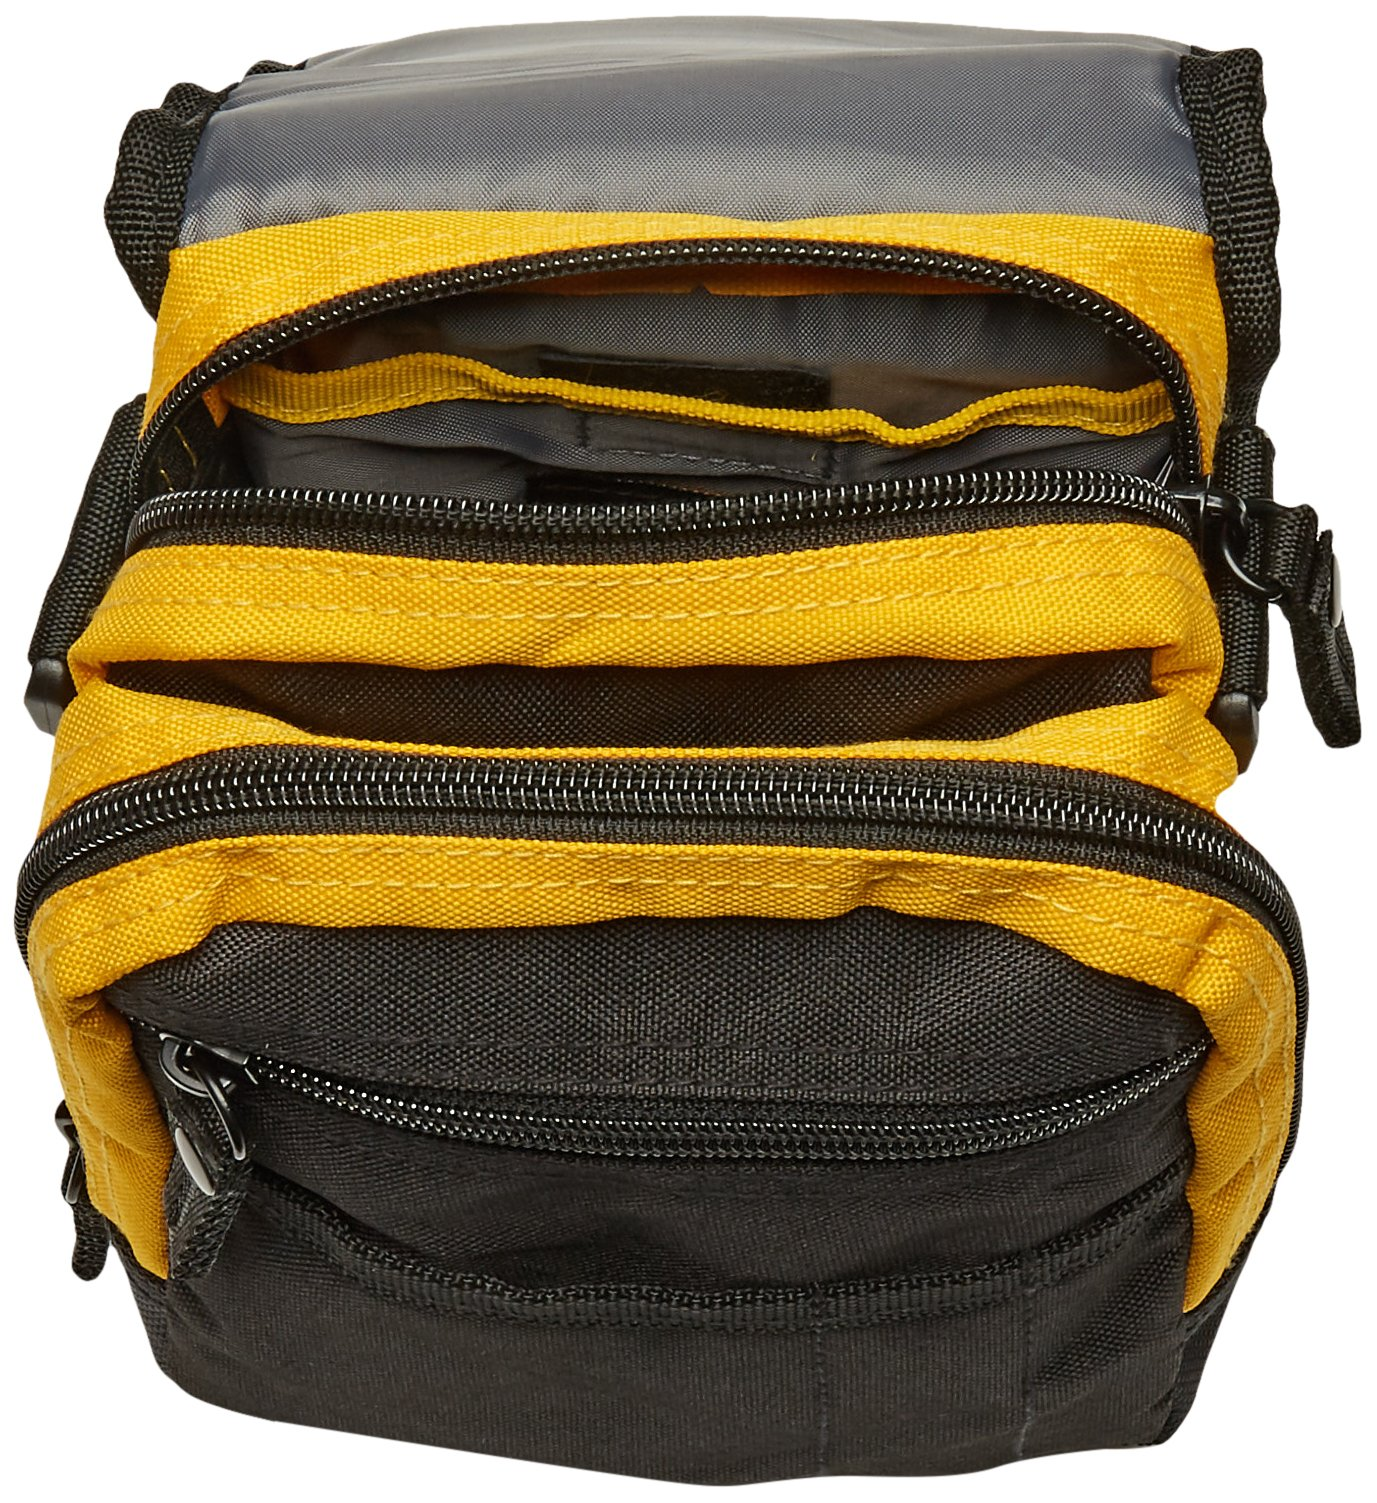 Messenger Bag CATERPILLAR Rodney 83437-12 Black//Yellow